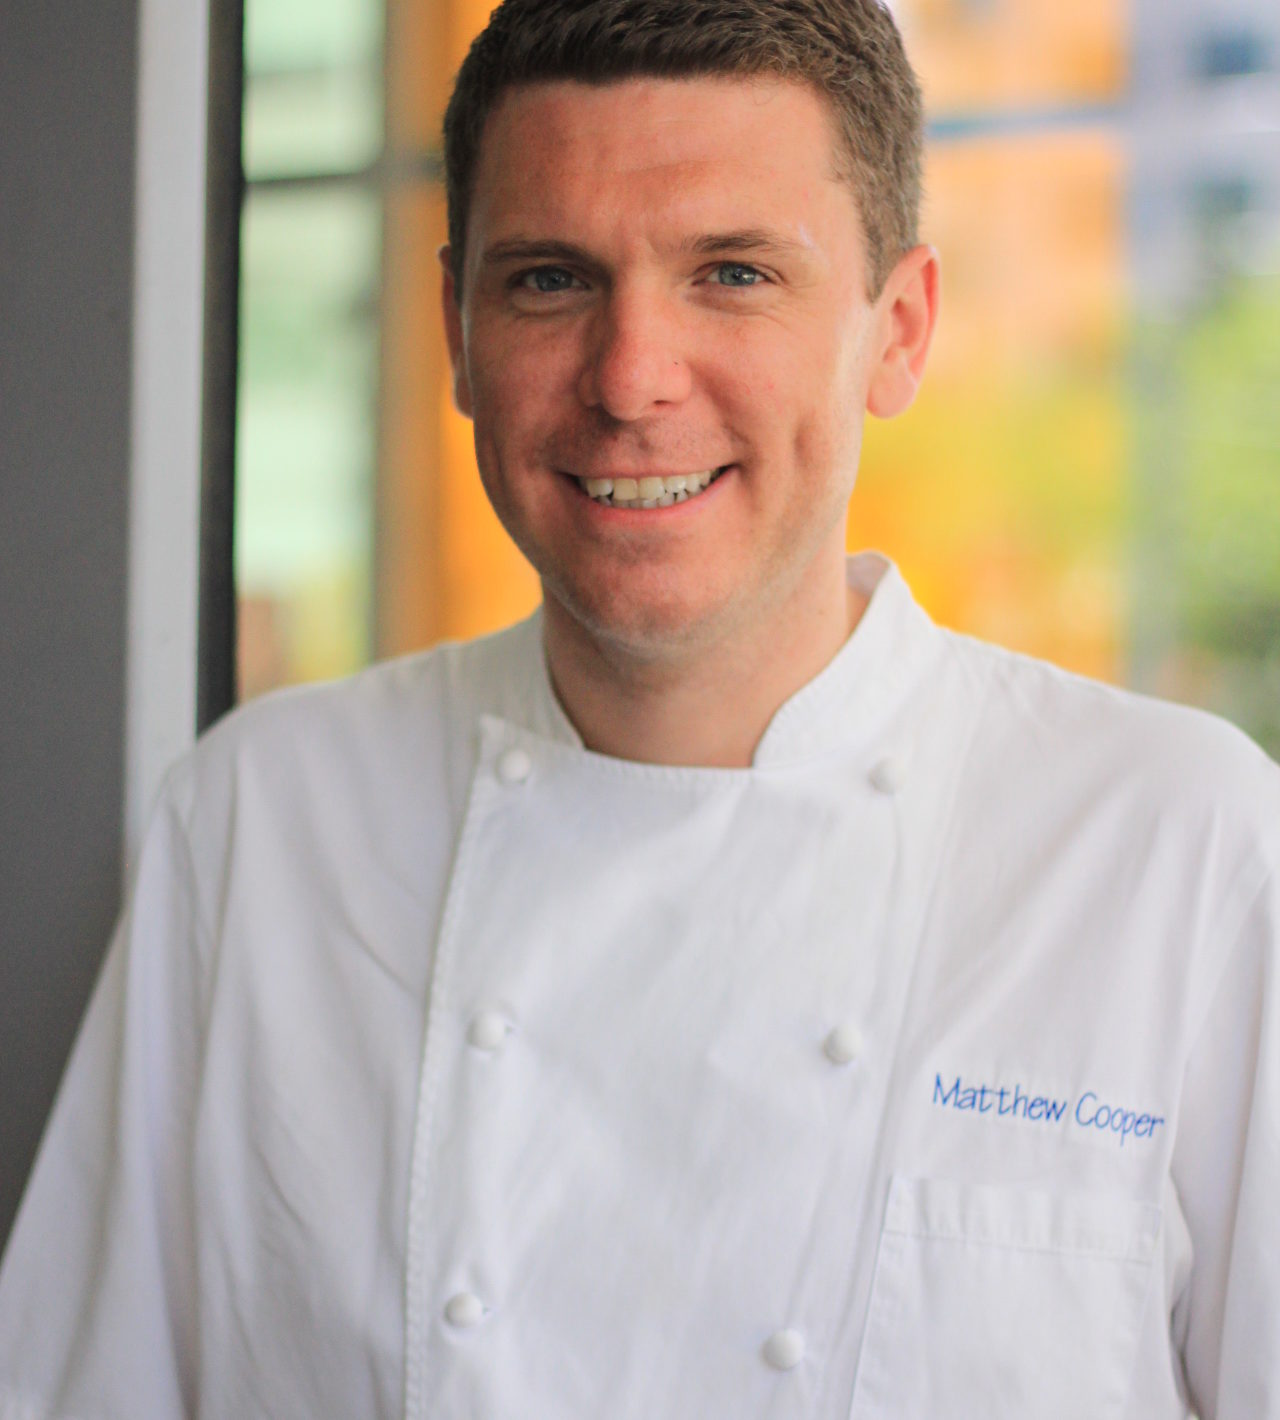 Chef Matthew Cooper standing in front of a window wearing a white uniform